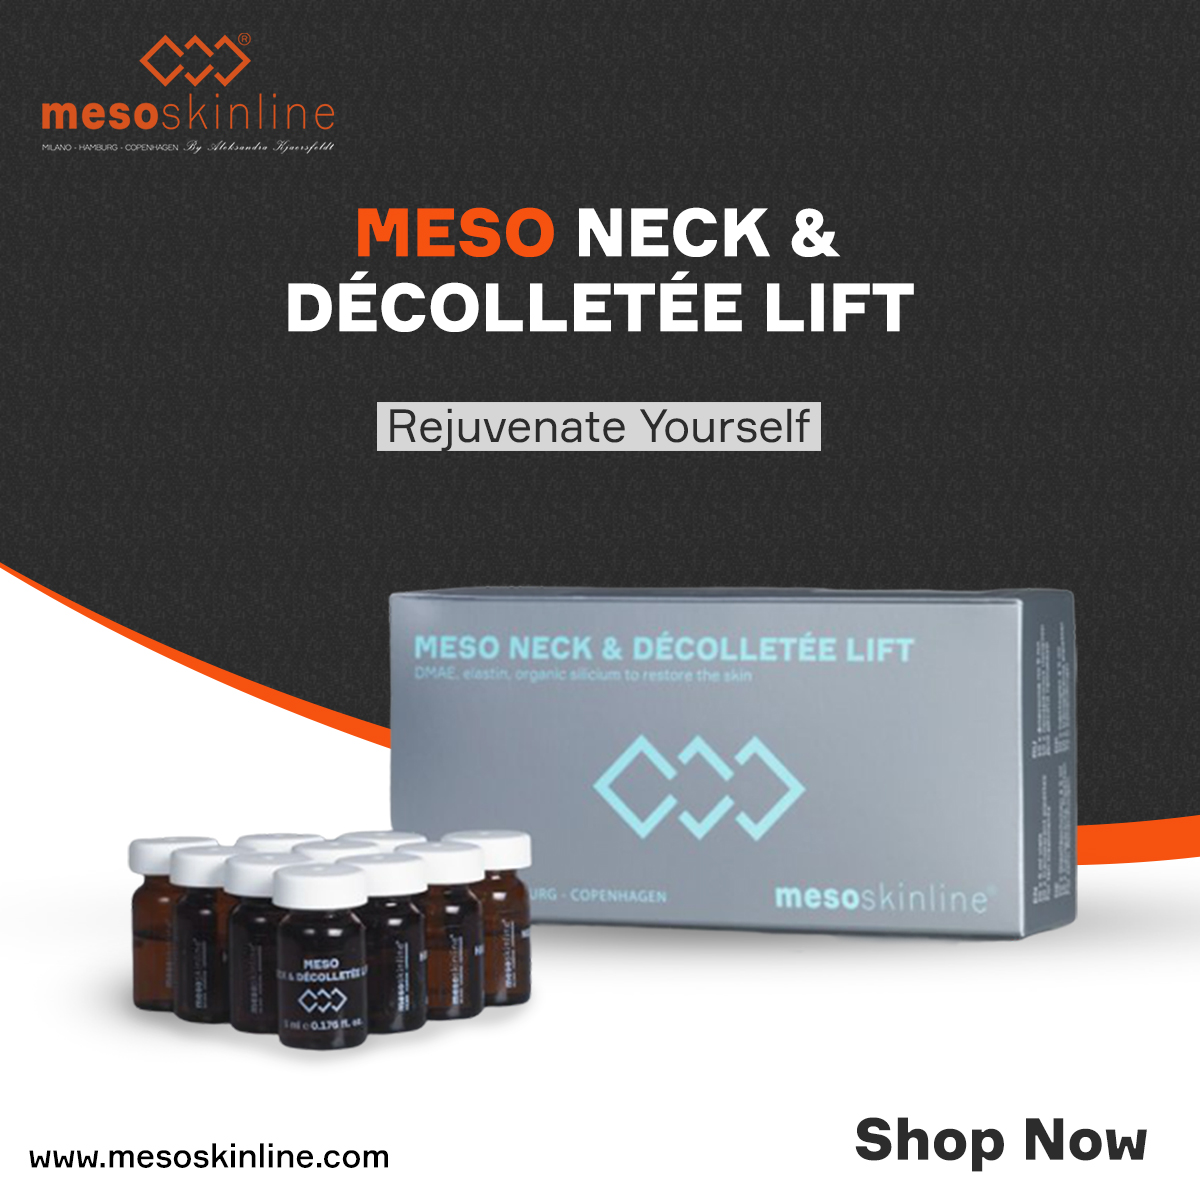 MESO NECK & DÉCOLLETÉE LIFT Gives the skin lift, strength and resilience  Shop Now: http://bit.ly/2S17fZz  #mesotherapy #meso #beautycourse #training #face #skinrejuvenation #skincare #skin #mesoneckanddecolette #firmskin #mesoskinline #labina #mesotech #mesoskinlineworldwidepic.twitter.com/D7DlJwCy51